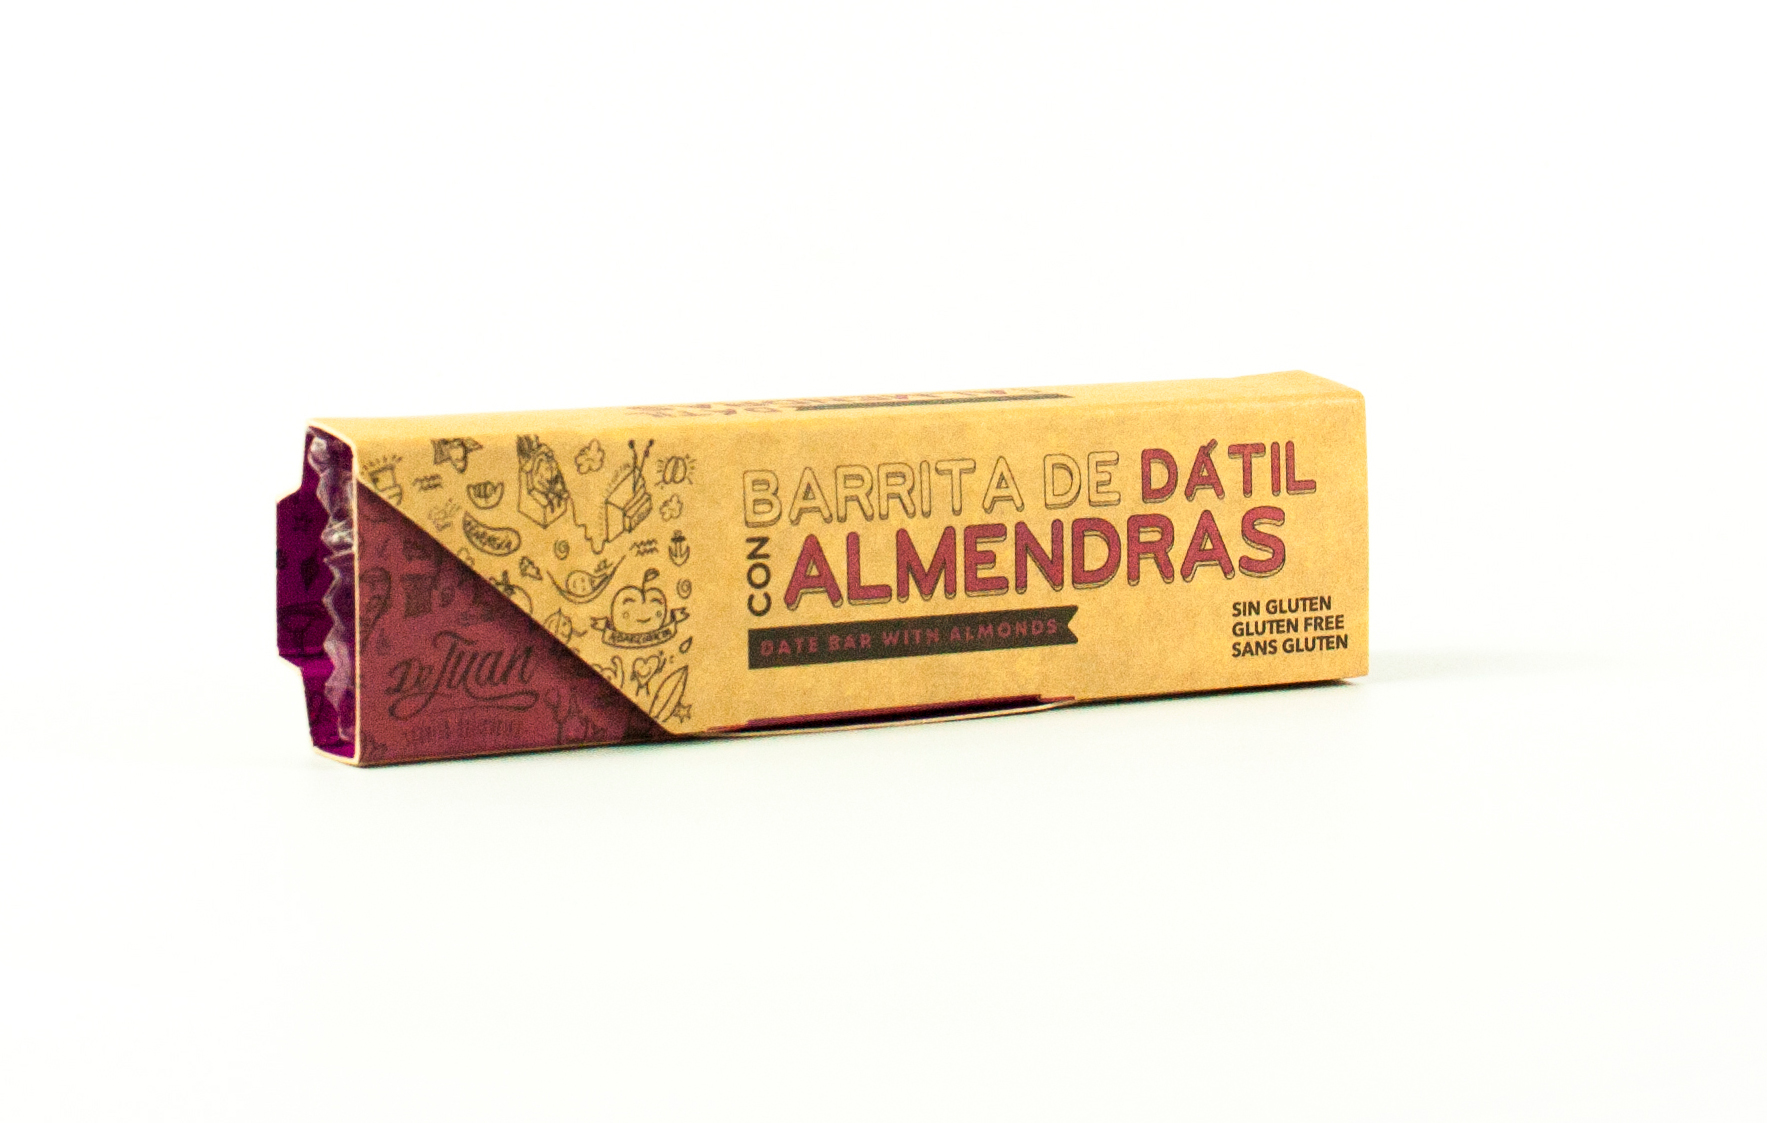 barrita-datil-almendras